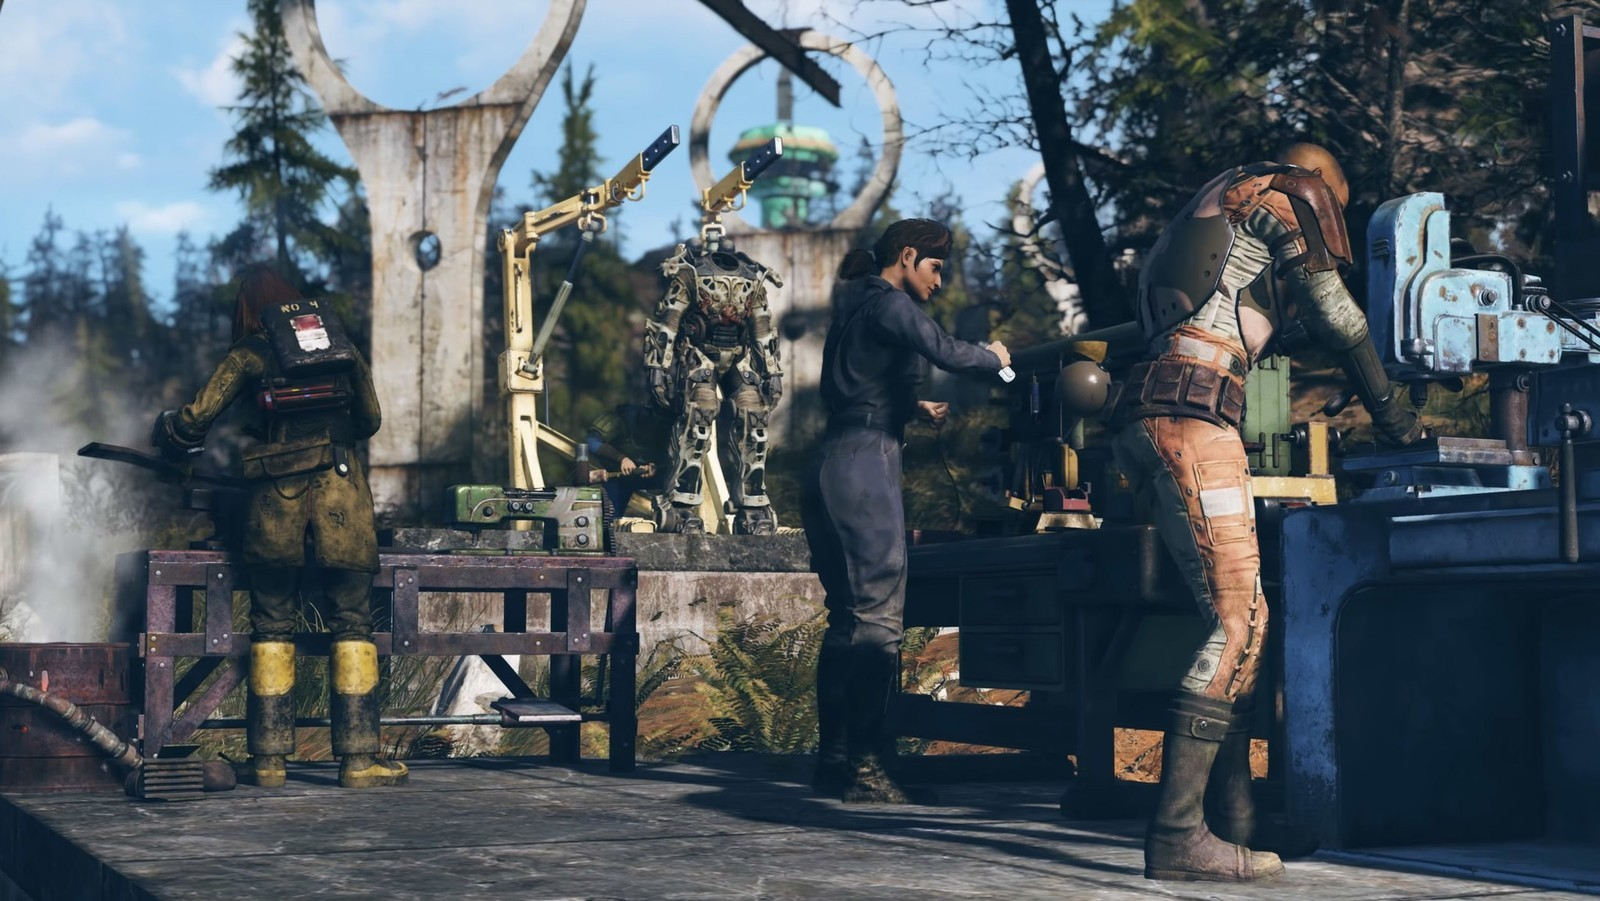 QnA VBage Fallout 76's latest patch fixes a lot of lingering issues since launch